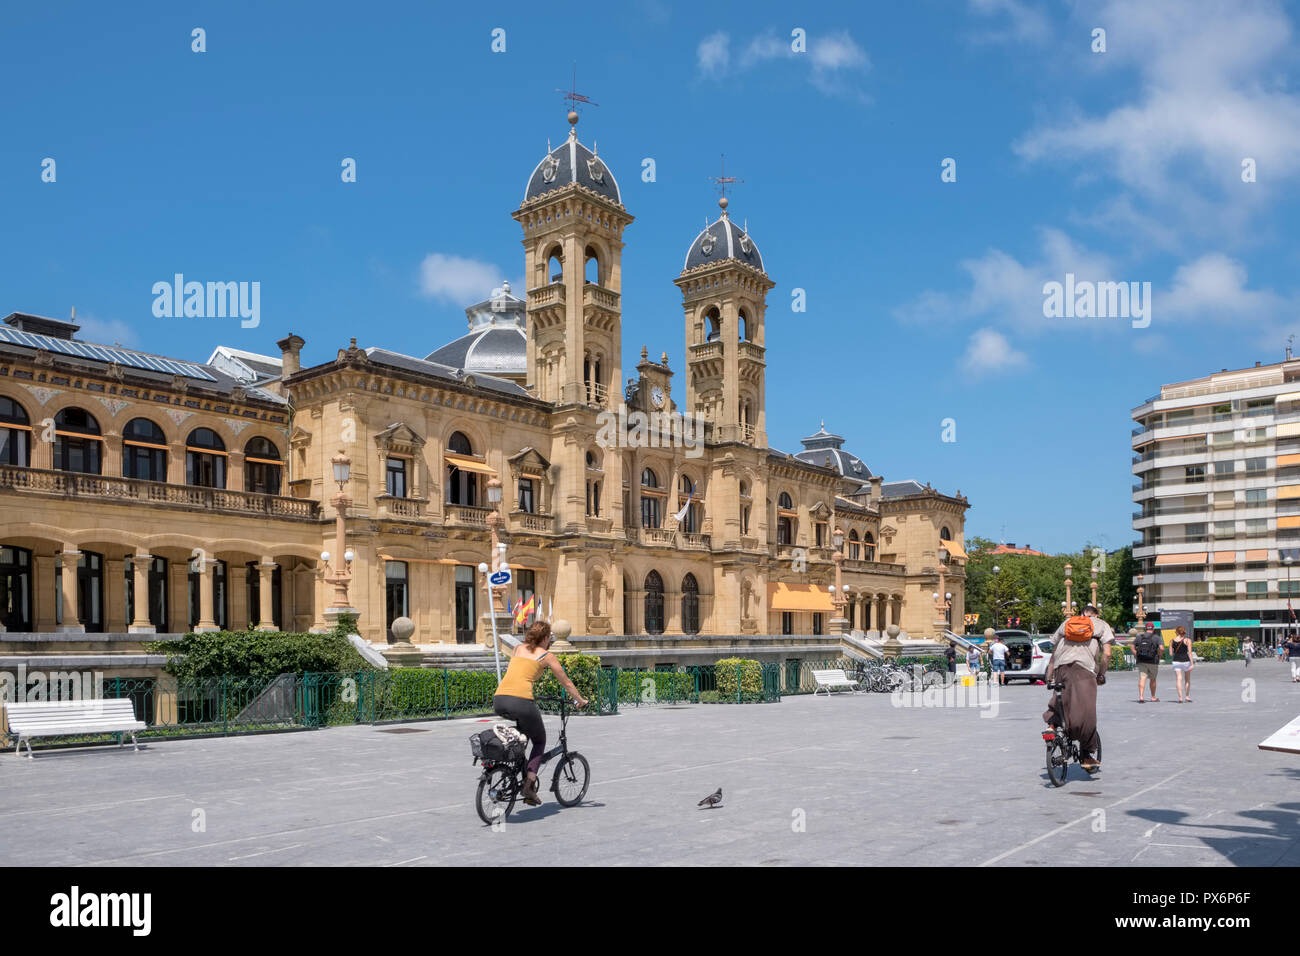 City Hall and Library, San Sebastian, Donostia, in the Basque Country, Spain, Europe - Stock Image